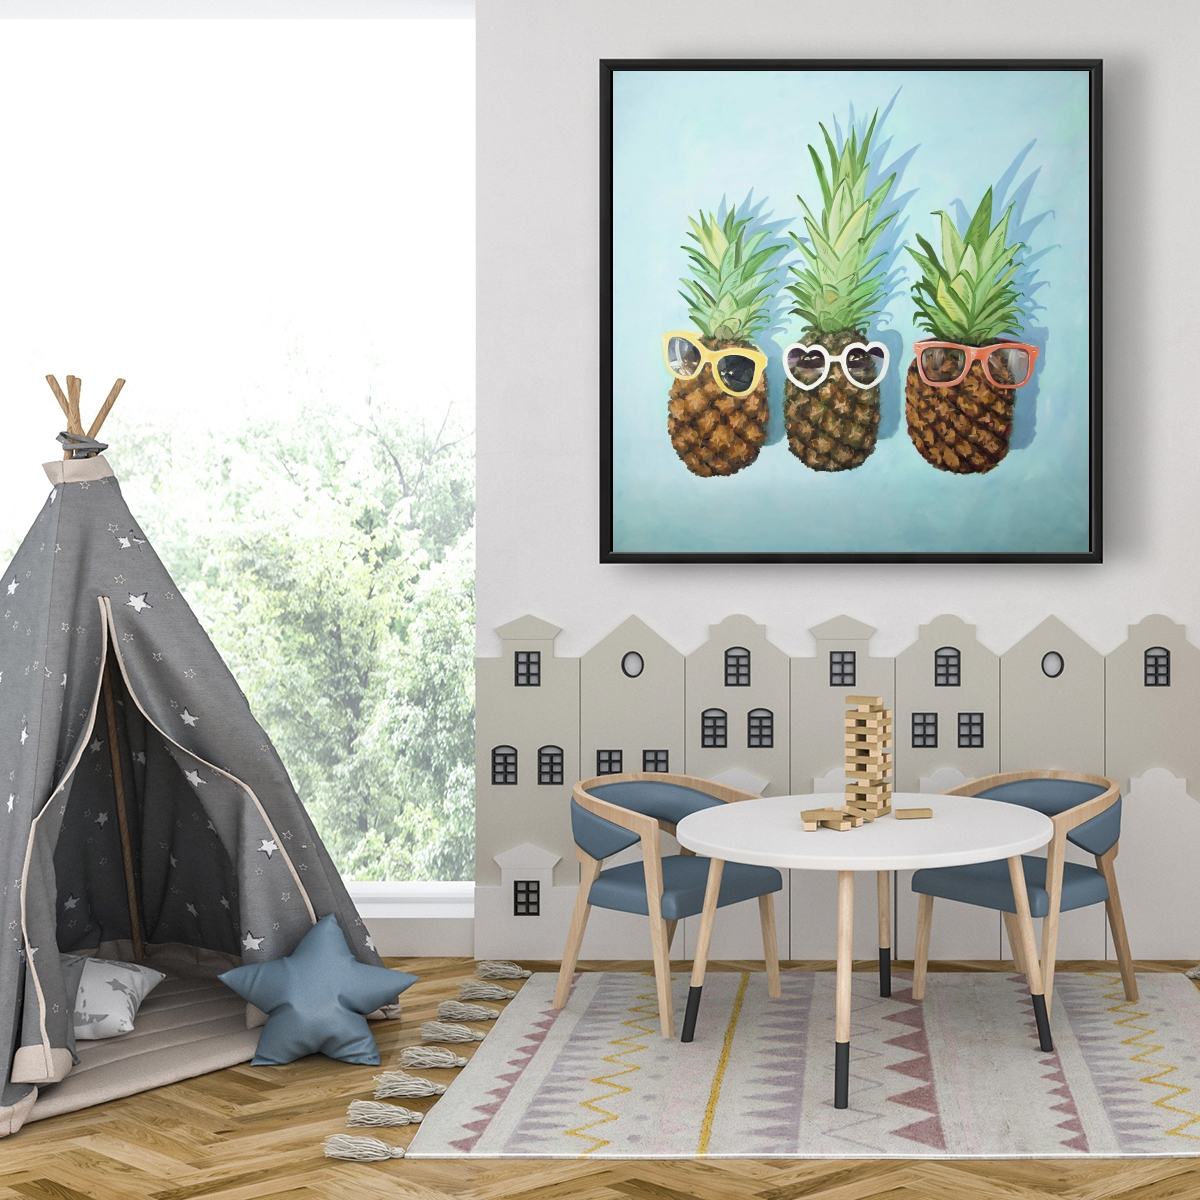 Framed 36 x 36 - Summer pineapples